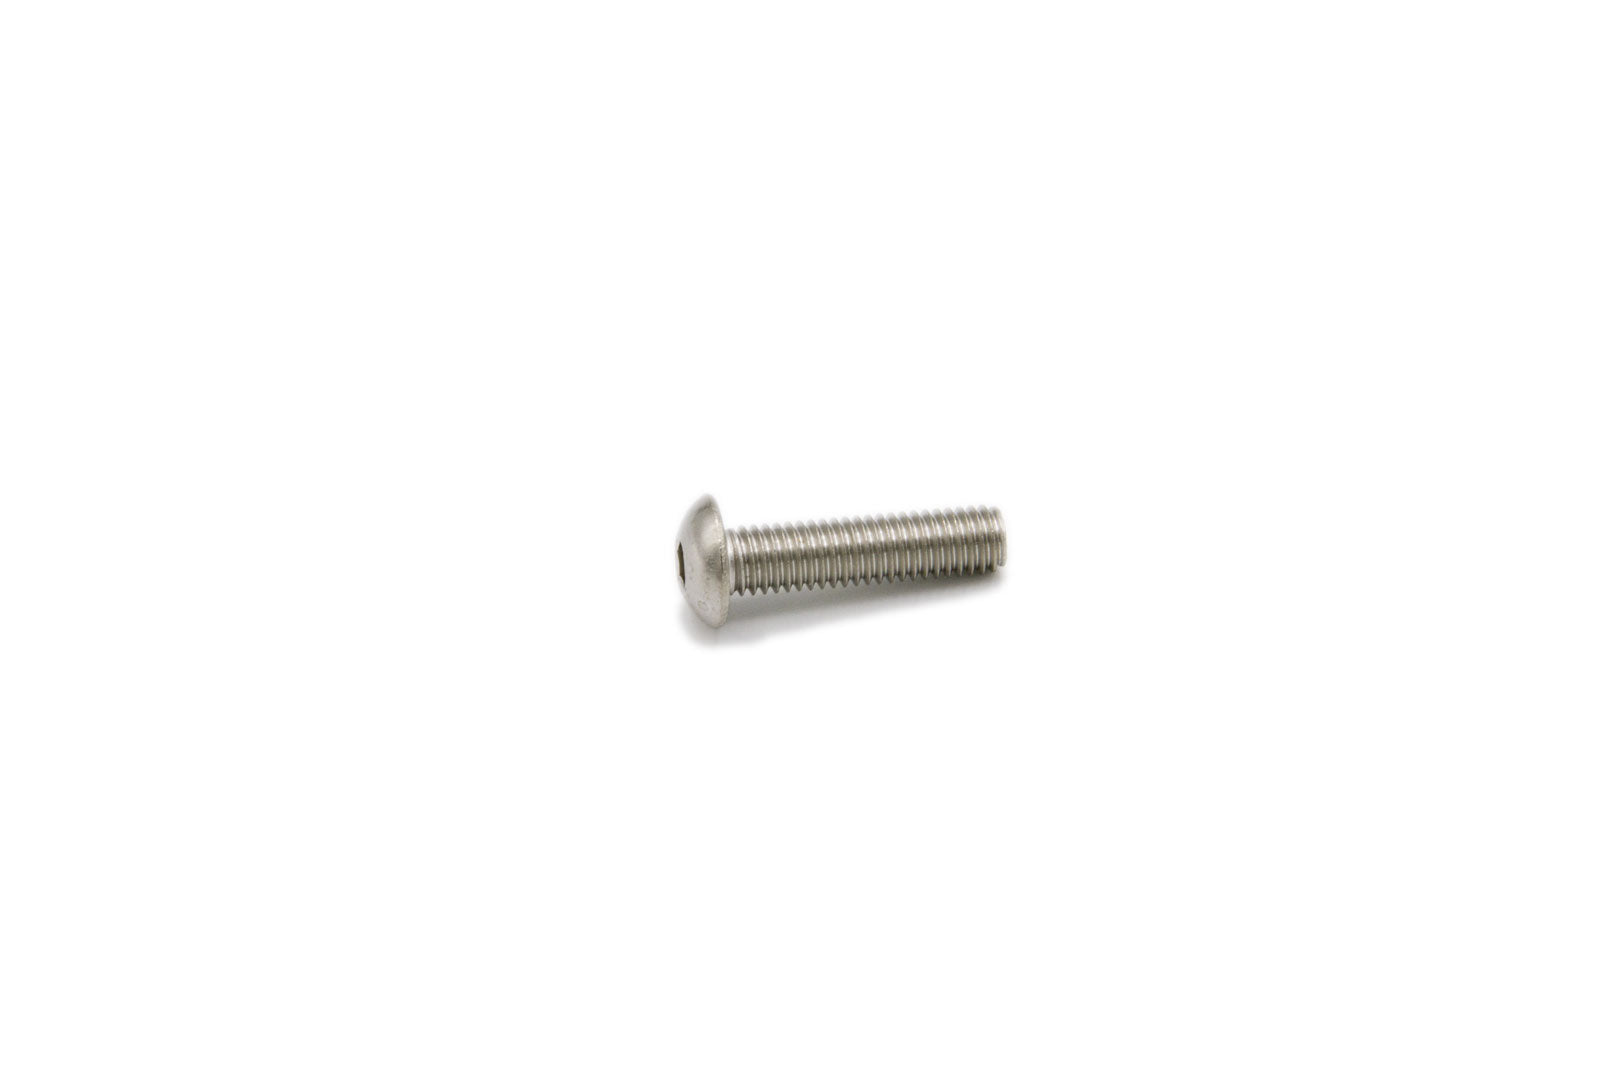 M5 x 20mm Replacement Screw